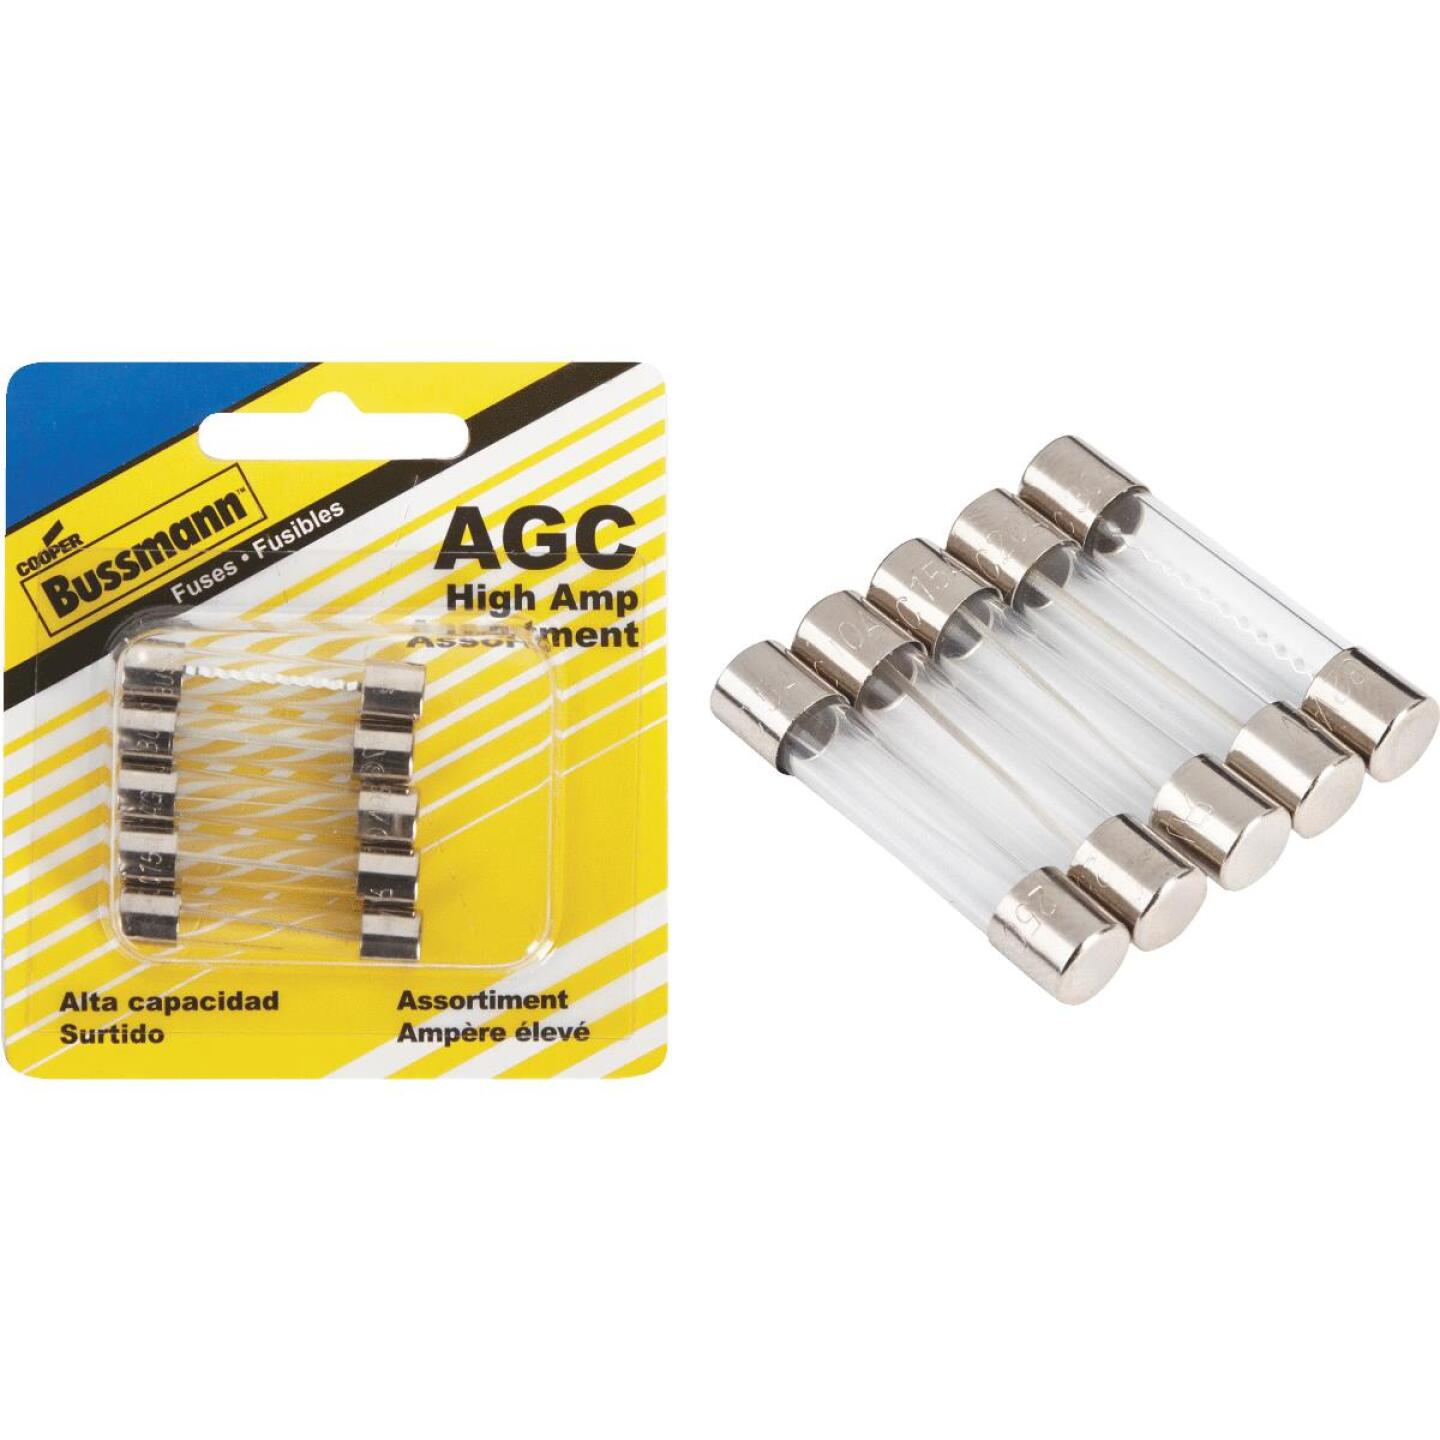 Bussmann AGC Glass Tube Fuse Assortment (5-Pack) Image 1